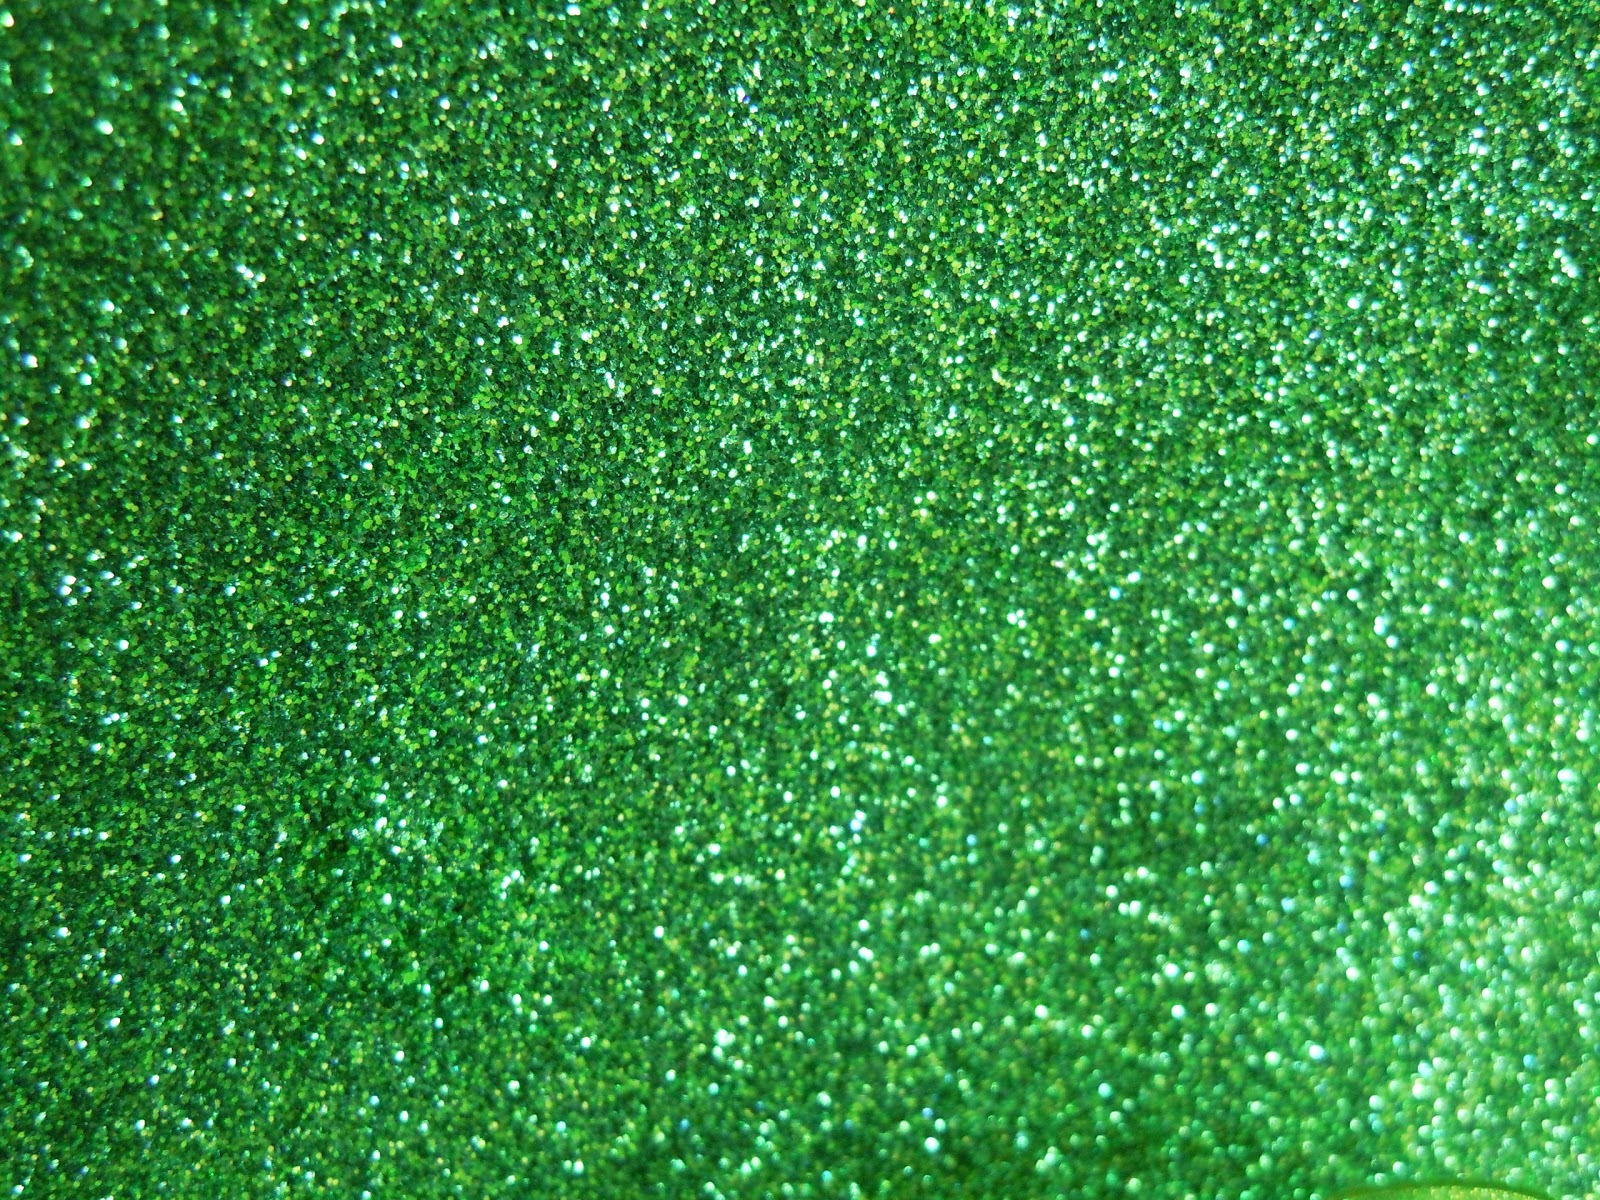 green sparkle background - photo #2